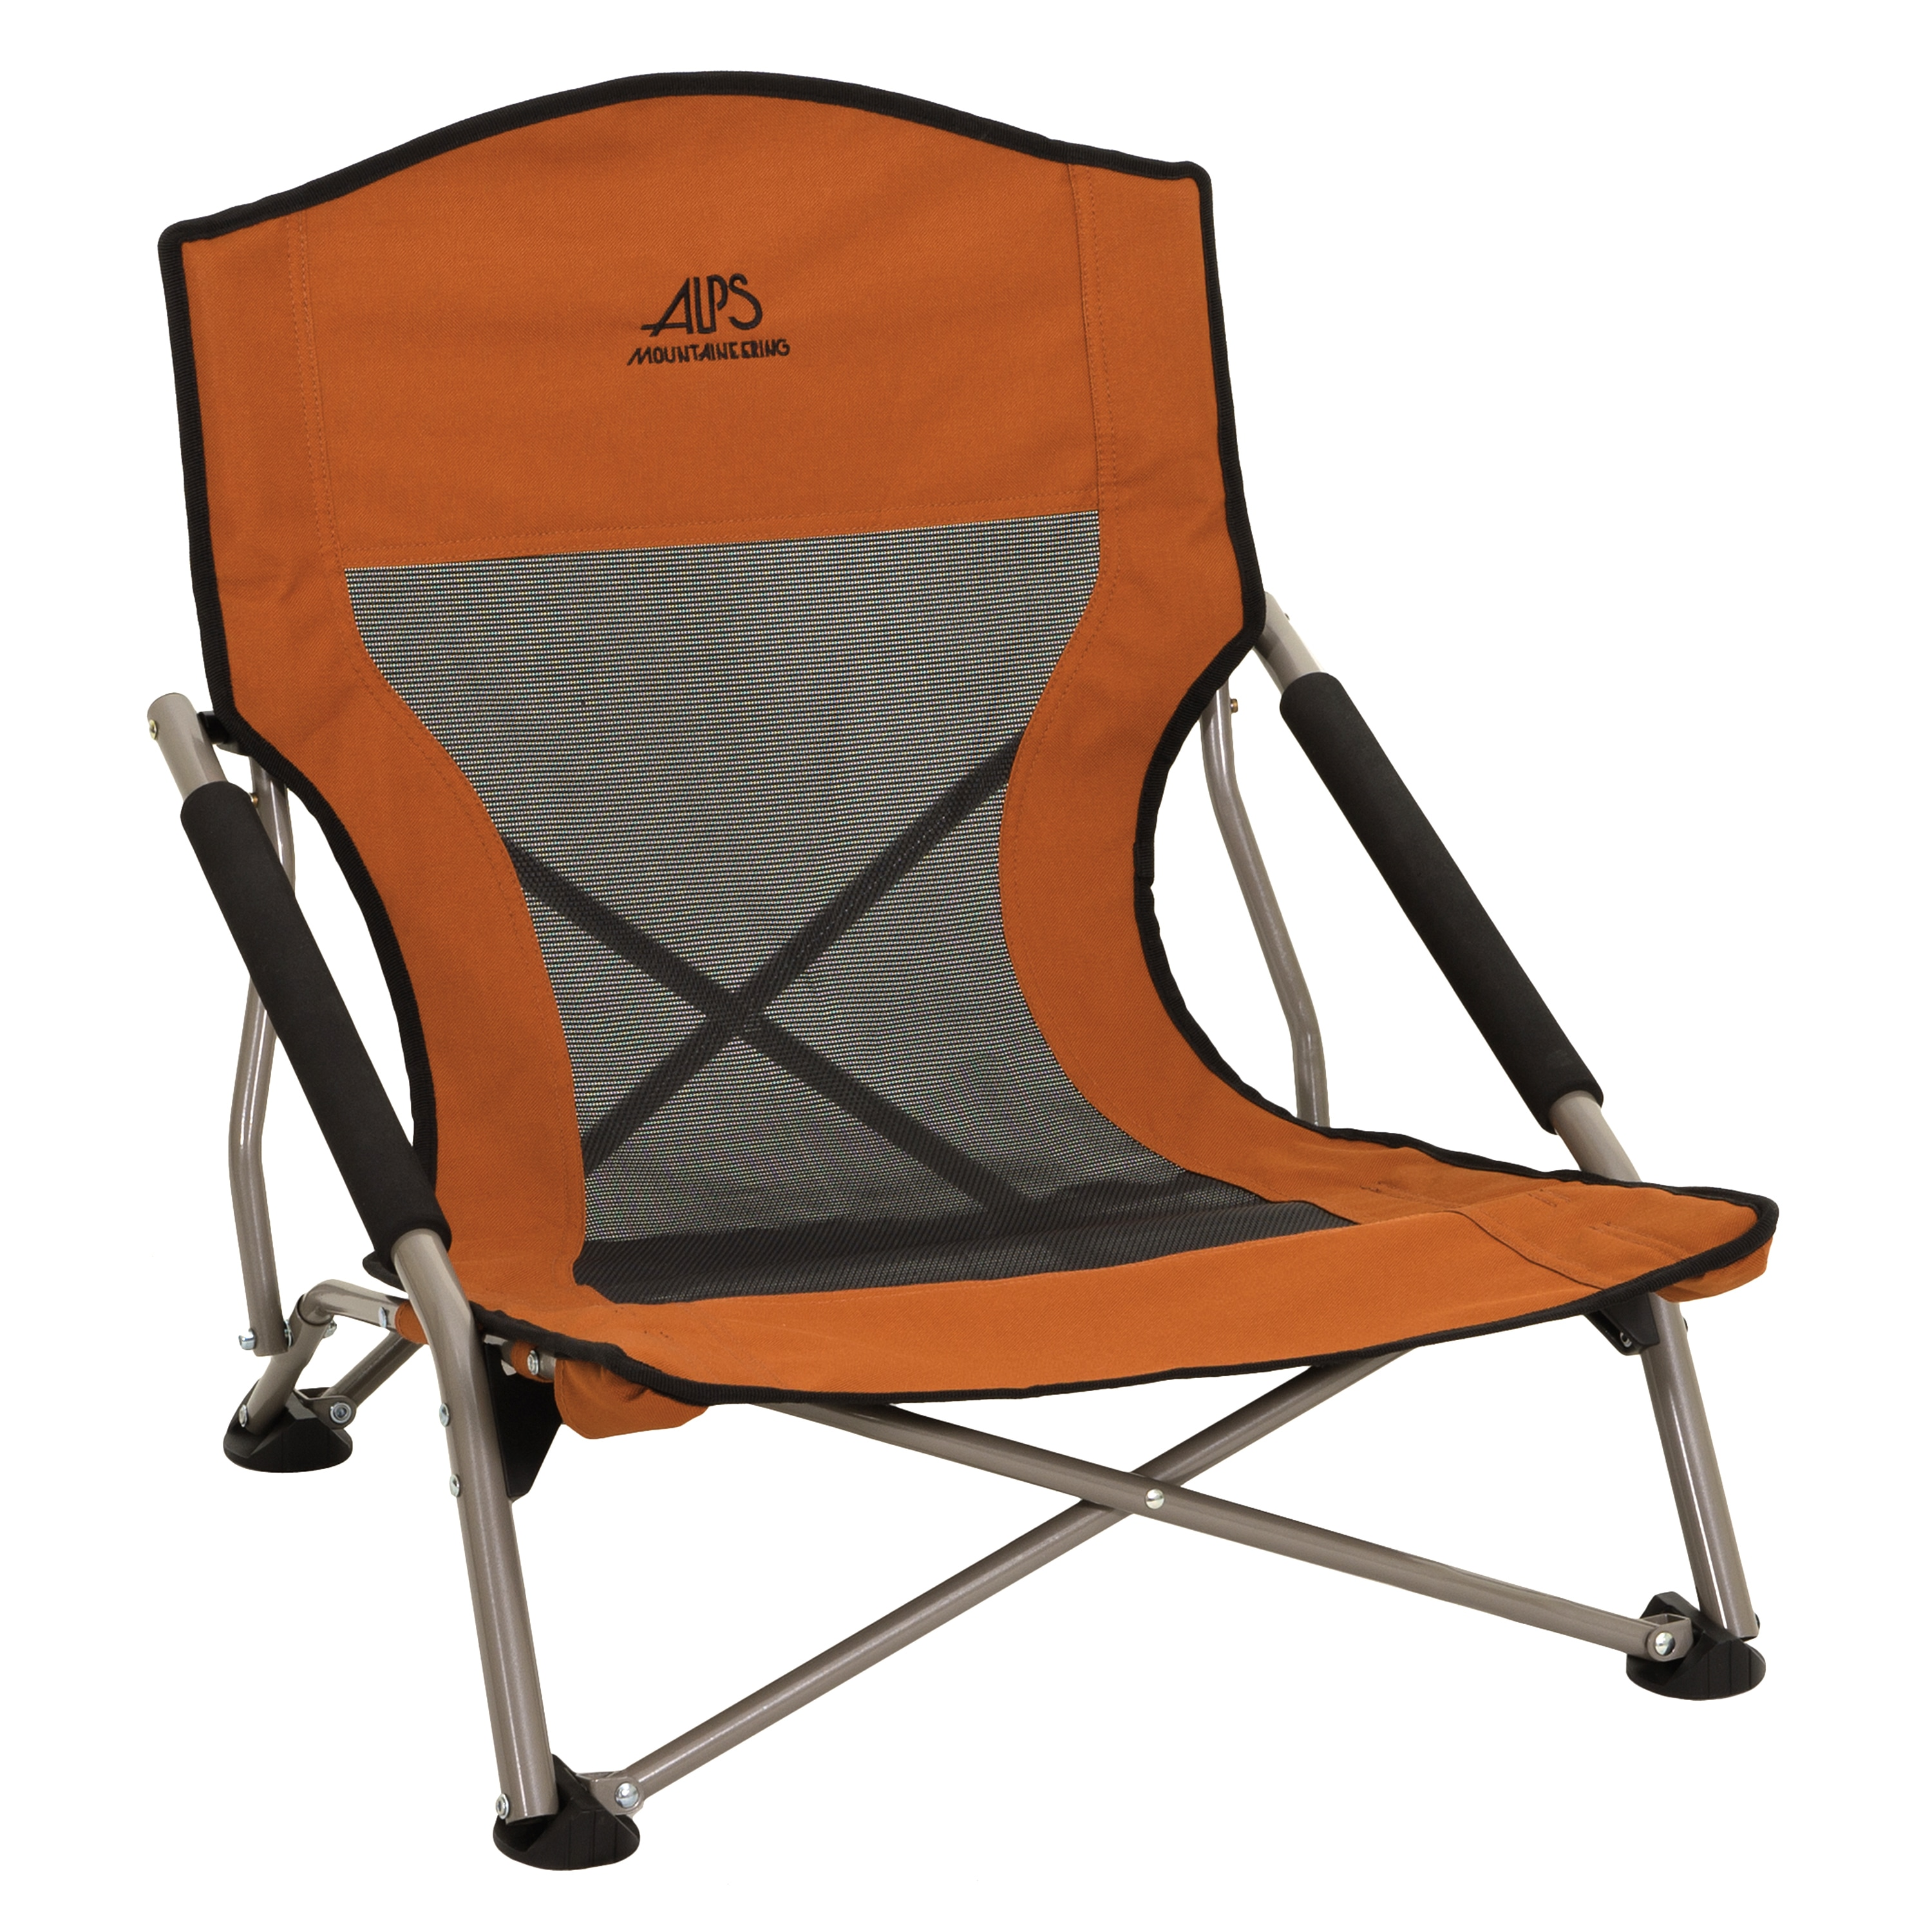 Alps Mountaineering Rust Rendezvous Chair Free Shipping Orders